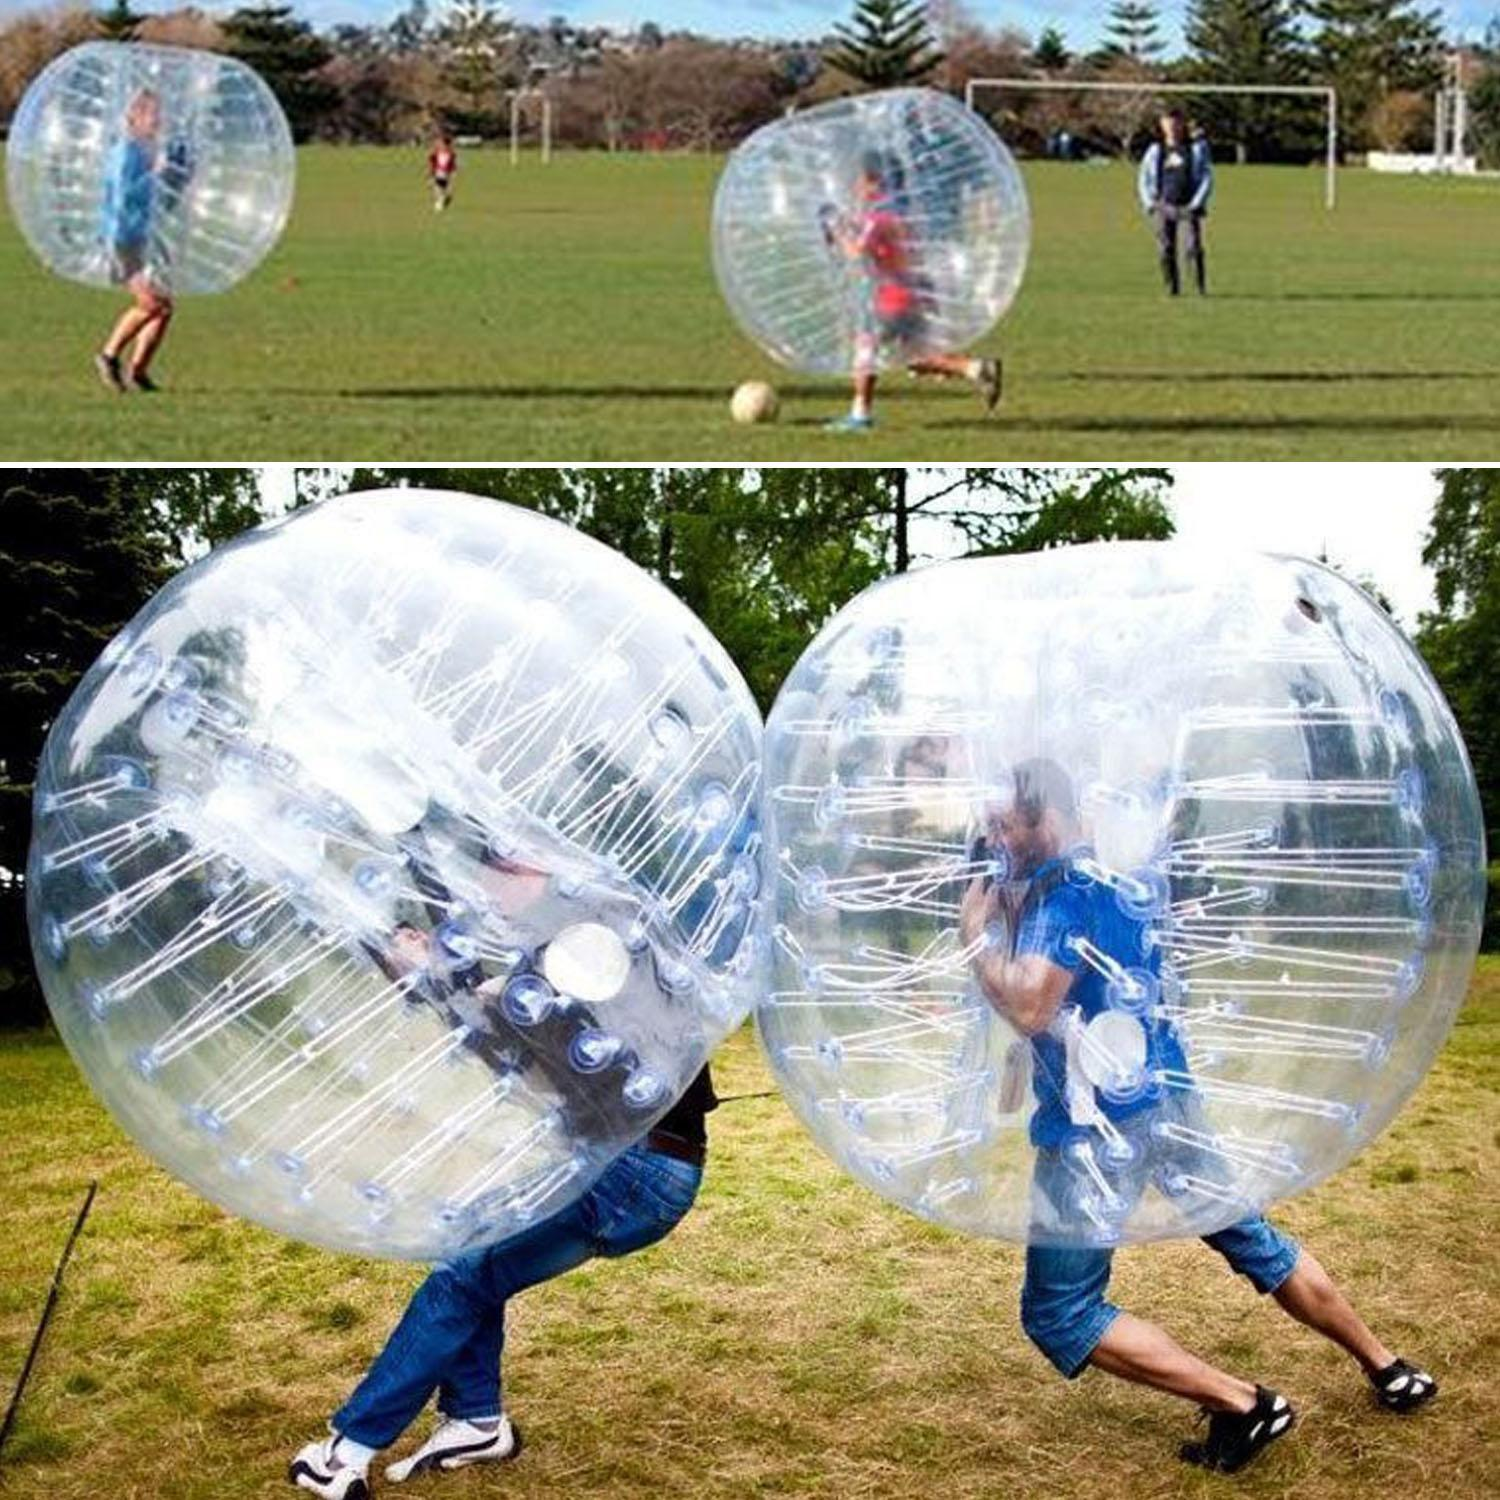 1.5M Body Inflatable Bumper Human Knocker Ball Bubble Soccer ,PVC, Transparent BETT by